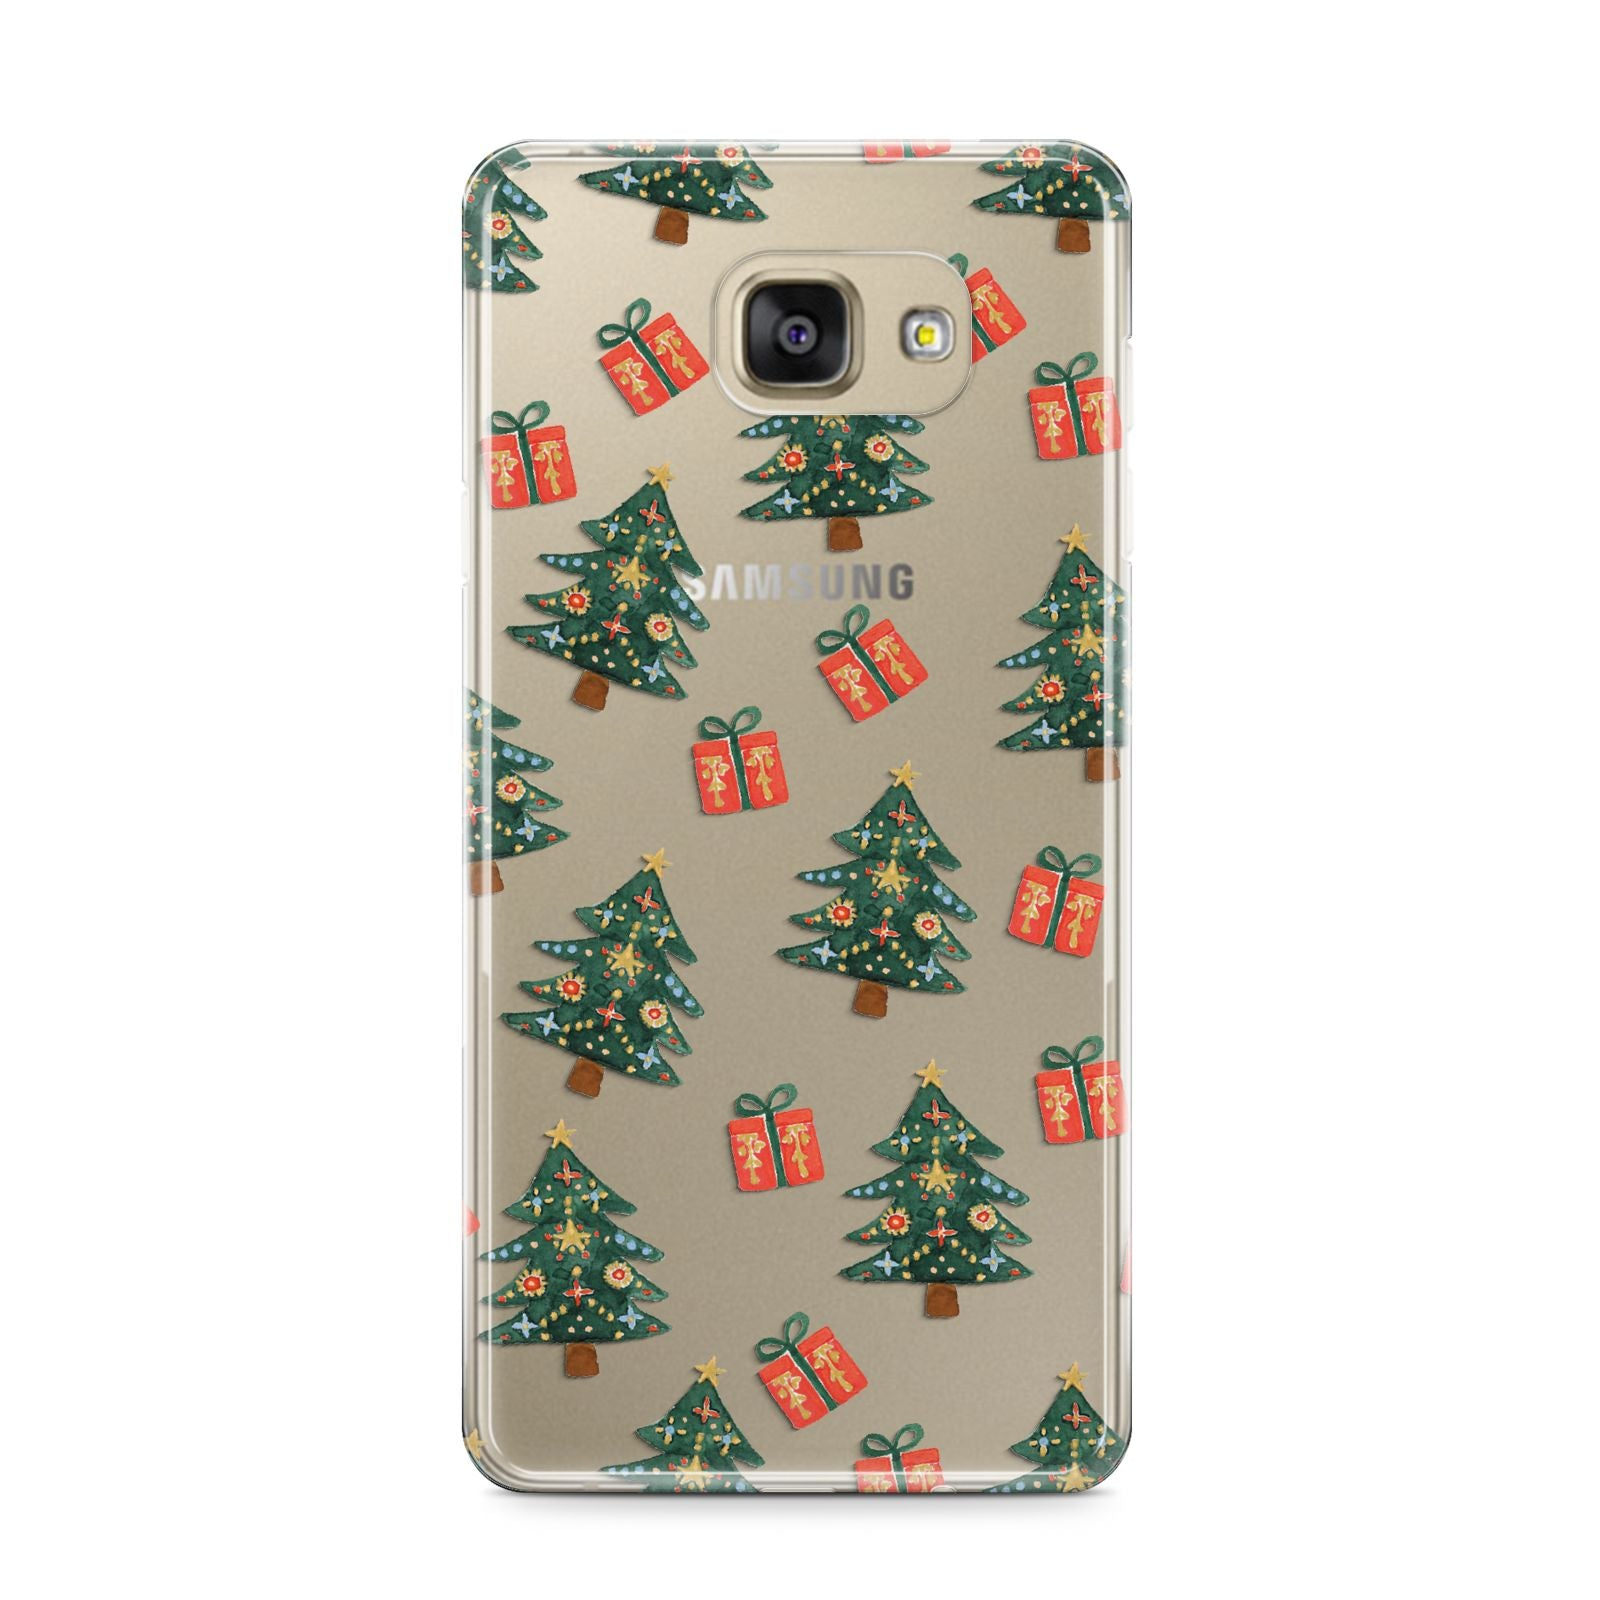 Christmas tree and presents Samsung Galaxy A9 2016 Case on gold phone